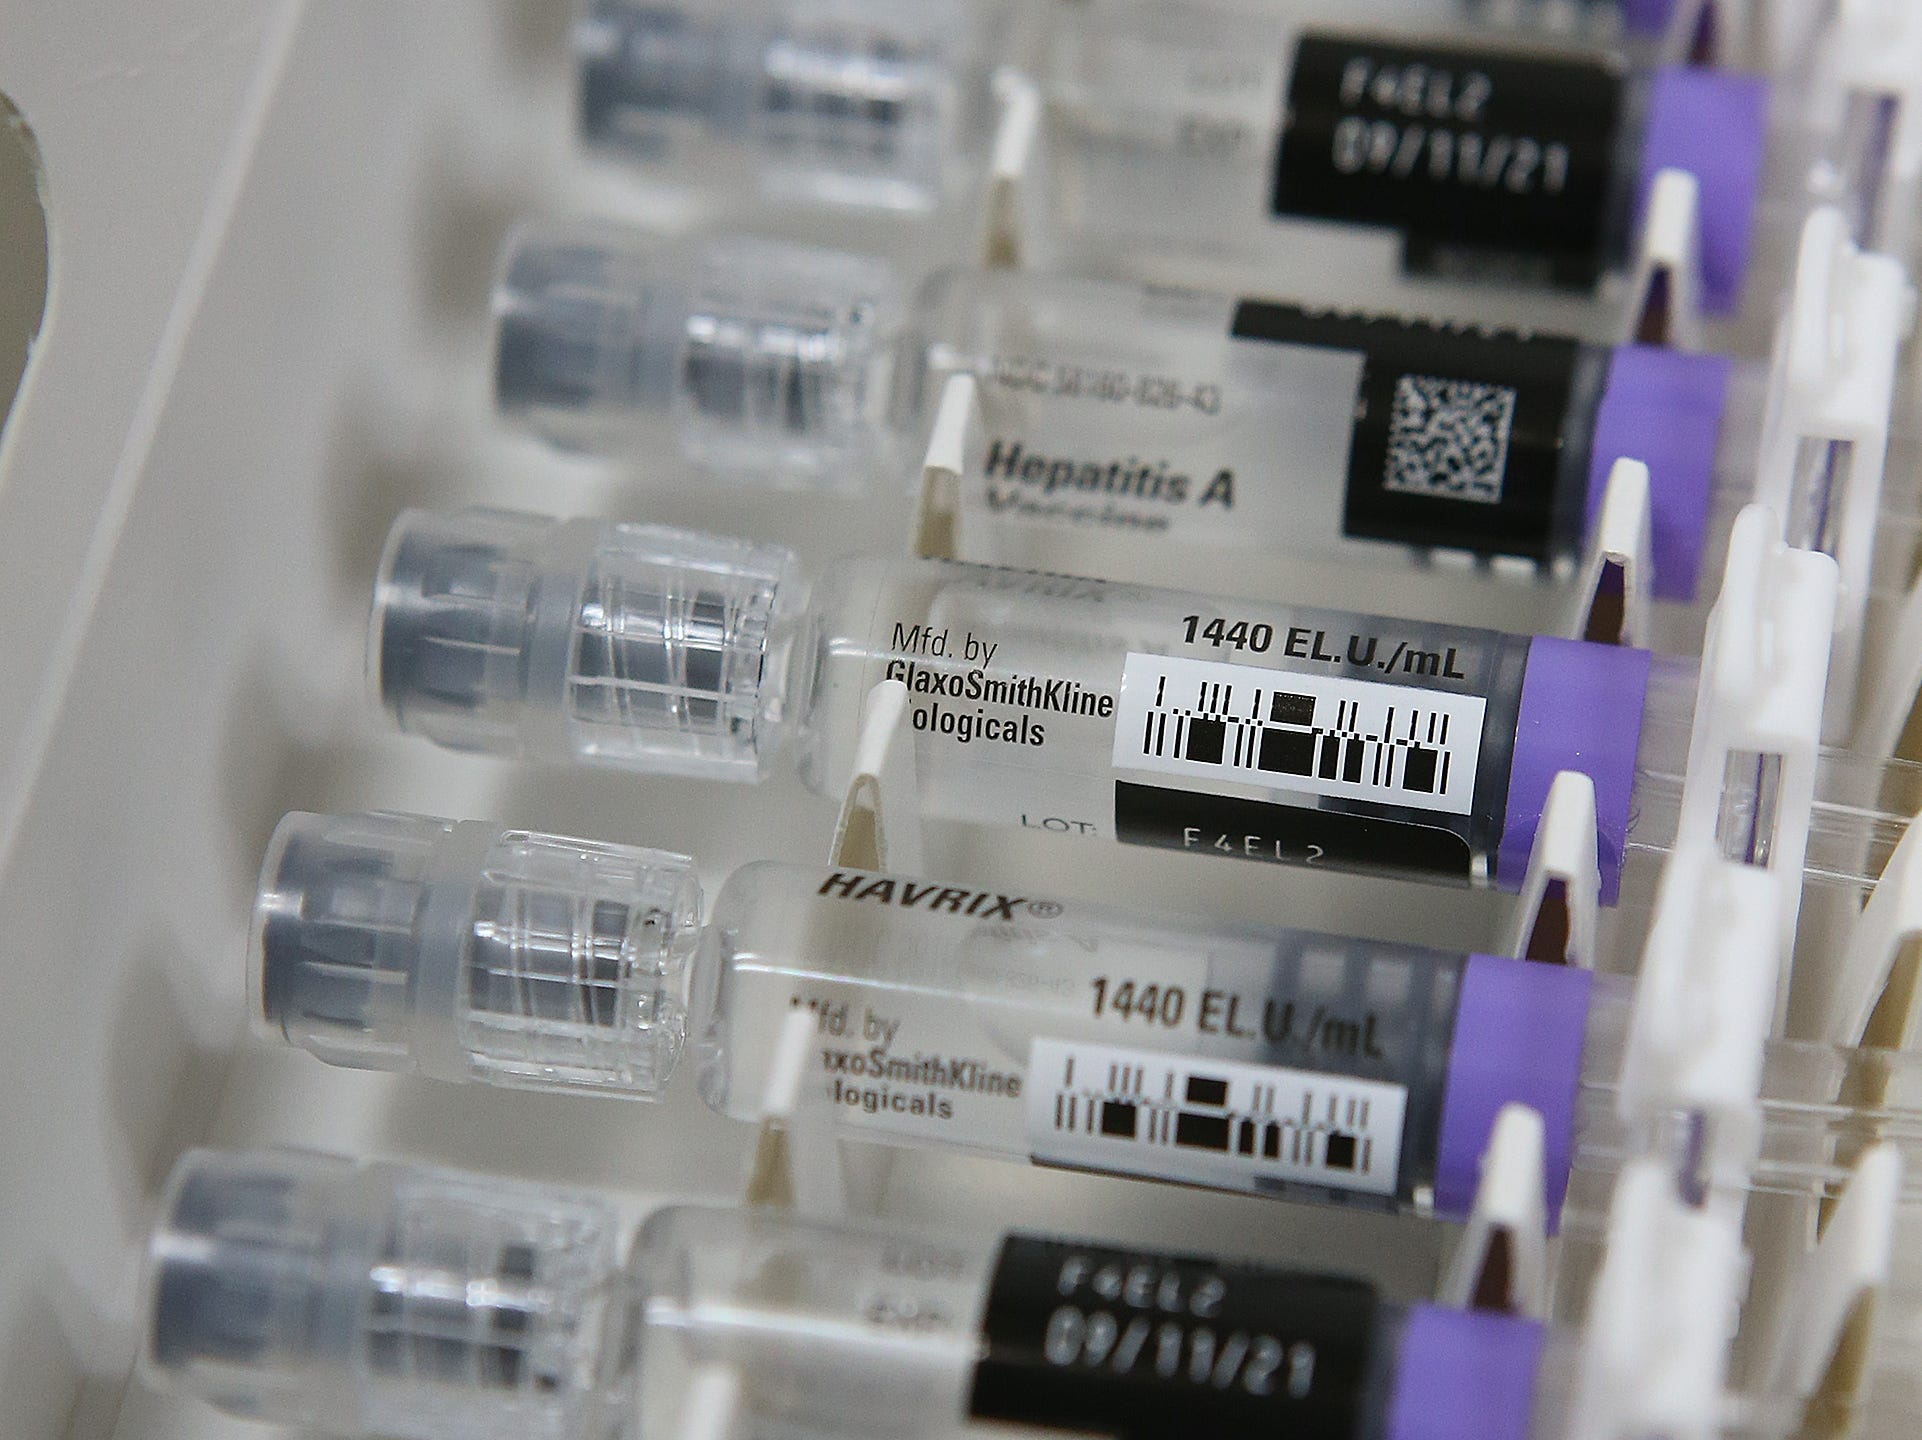 Vials of the hepatitis A vaccination that Sharon Wesley brought with her to the Pulaski County Detention Center to vaccinate inmates.  About 90 percent of inmates opt to get vaccinated.